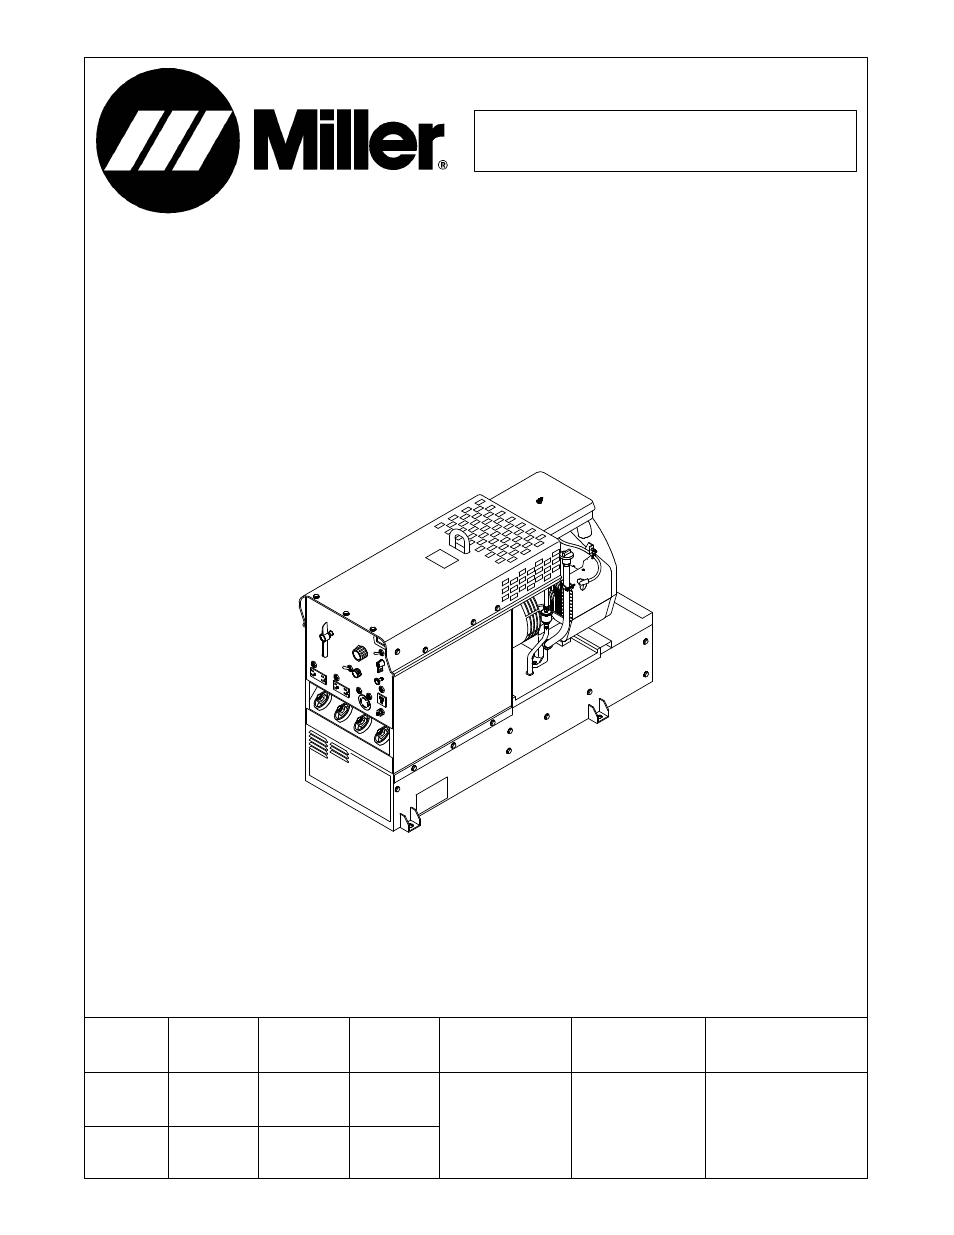 Miller electric legend aead 200 le user manual 68 pages swarovskicordoba Image collections